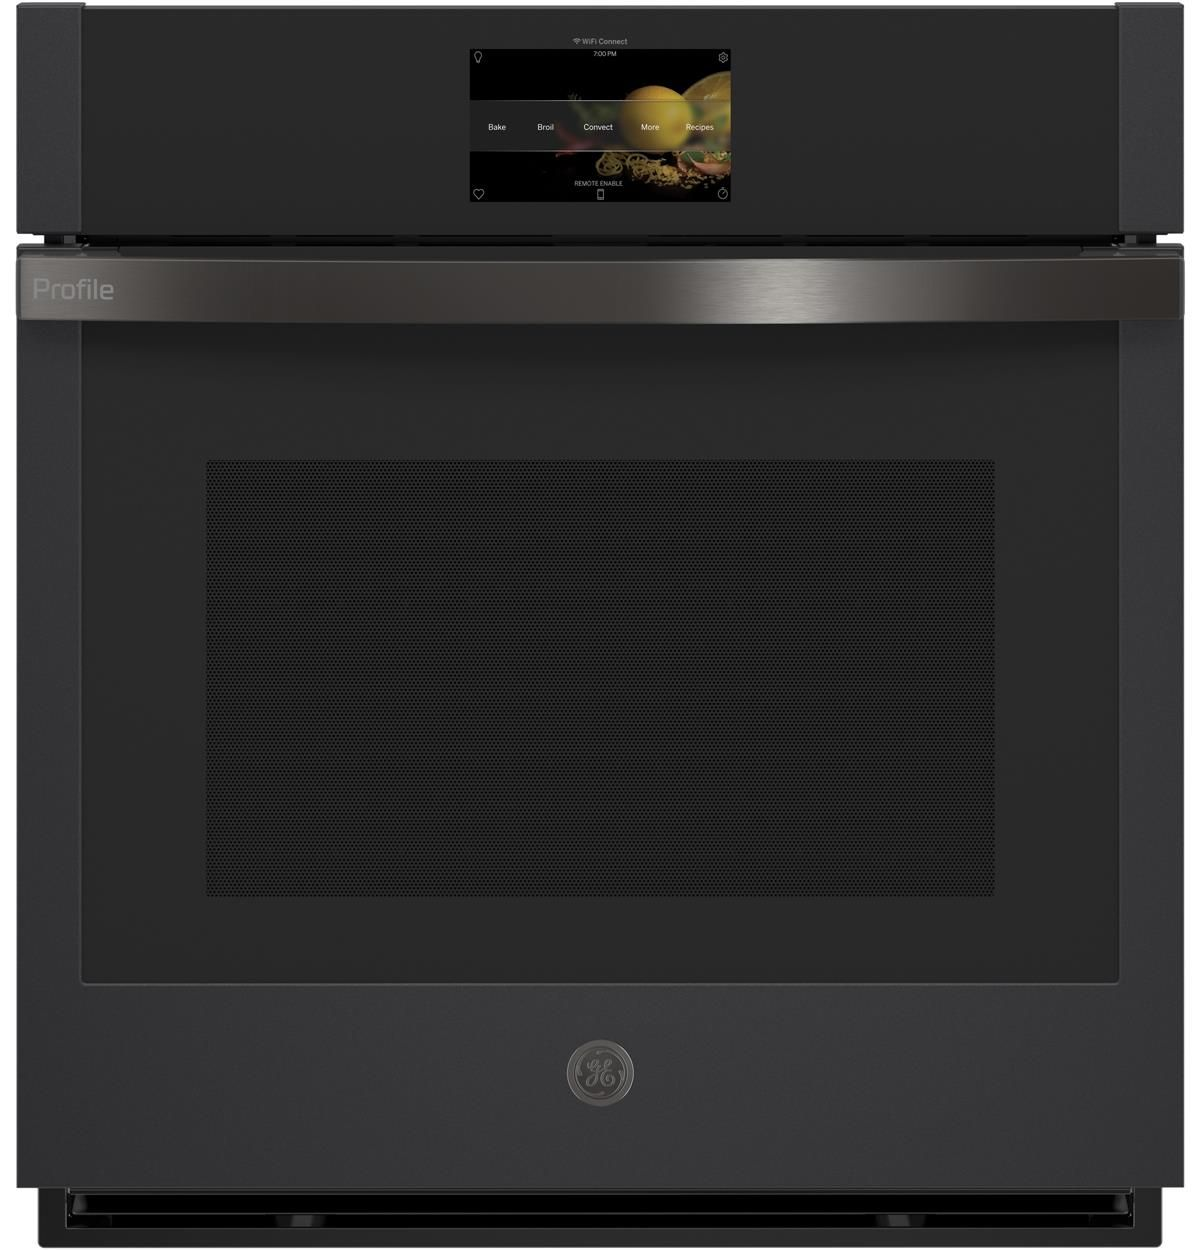 Ge Profile Series Pks7000fnds 27 Built In Convection Wall Oven